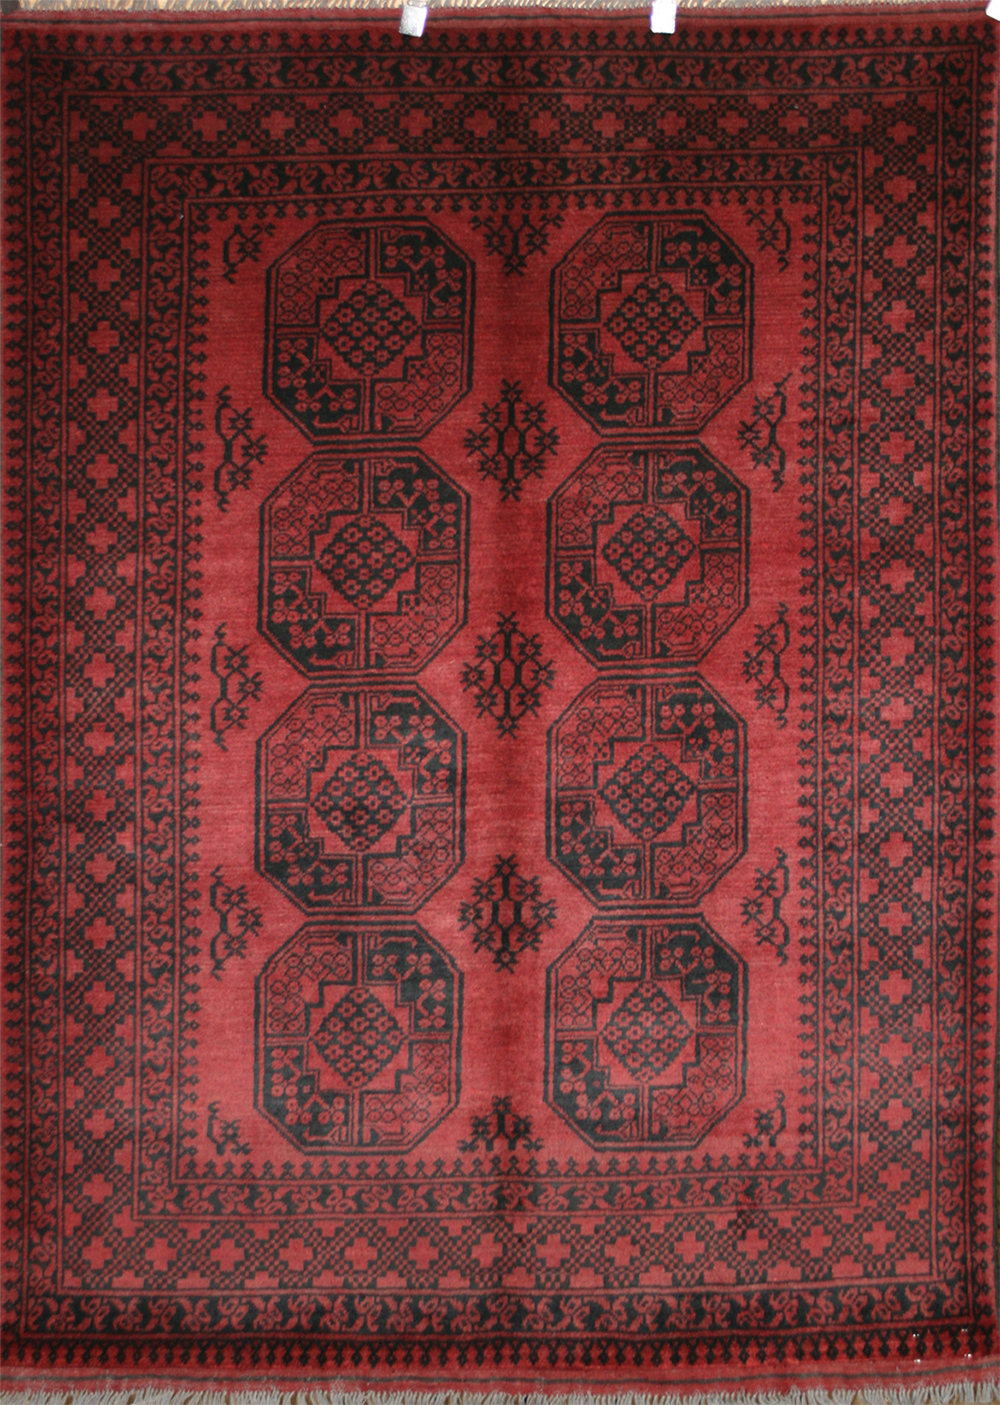 Afghan Red Rugs Aqcha Rugs Origin And Description Guide